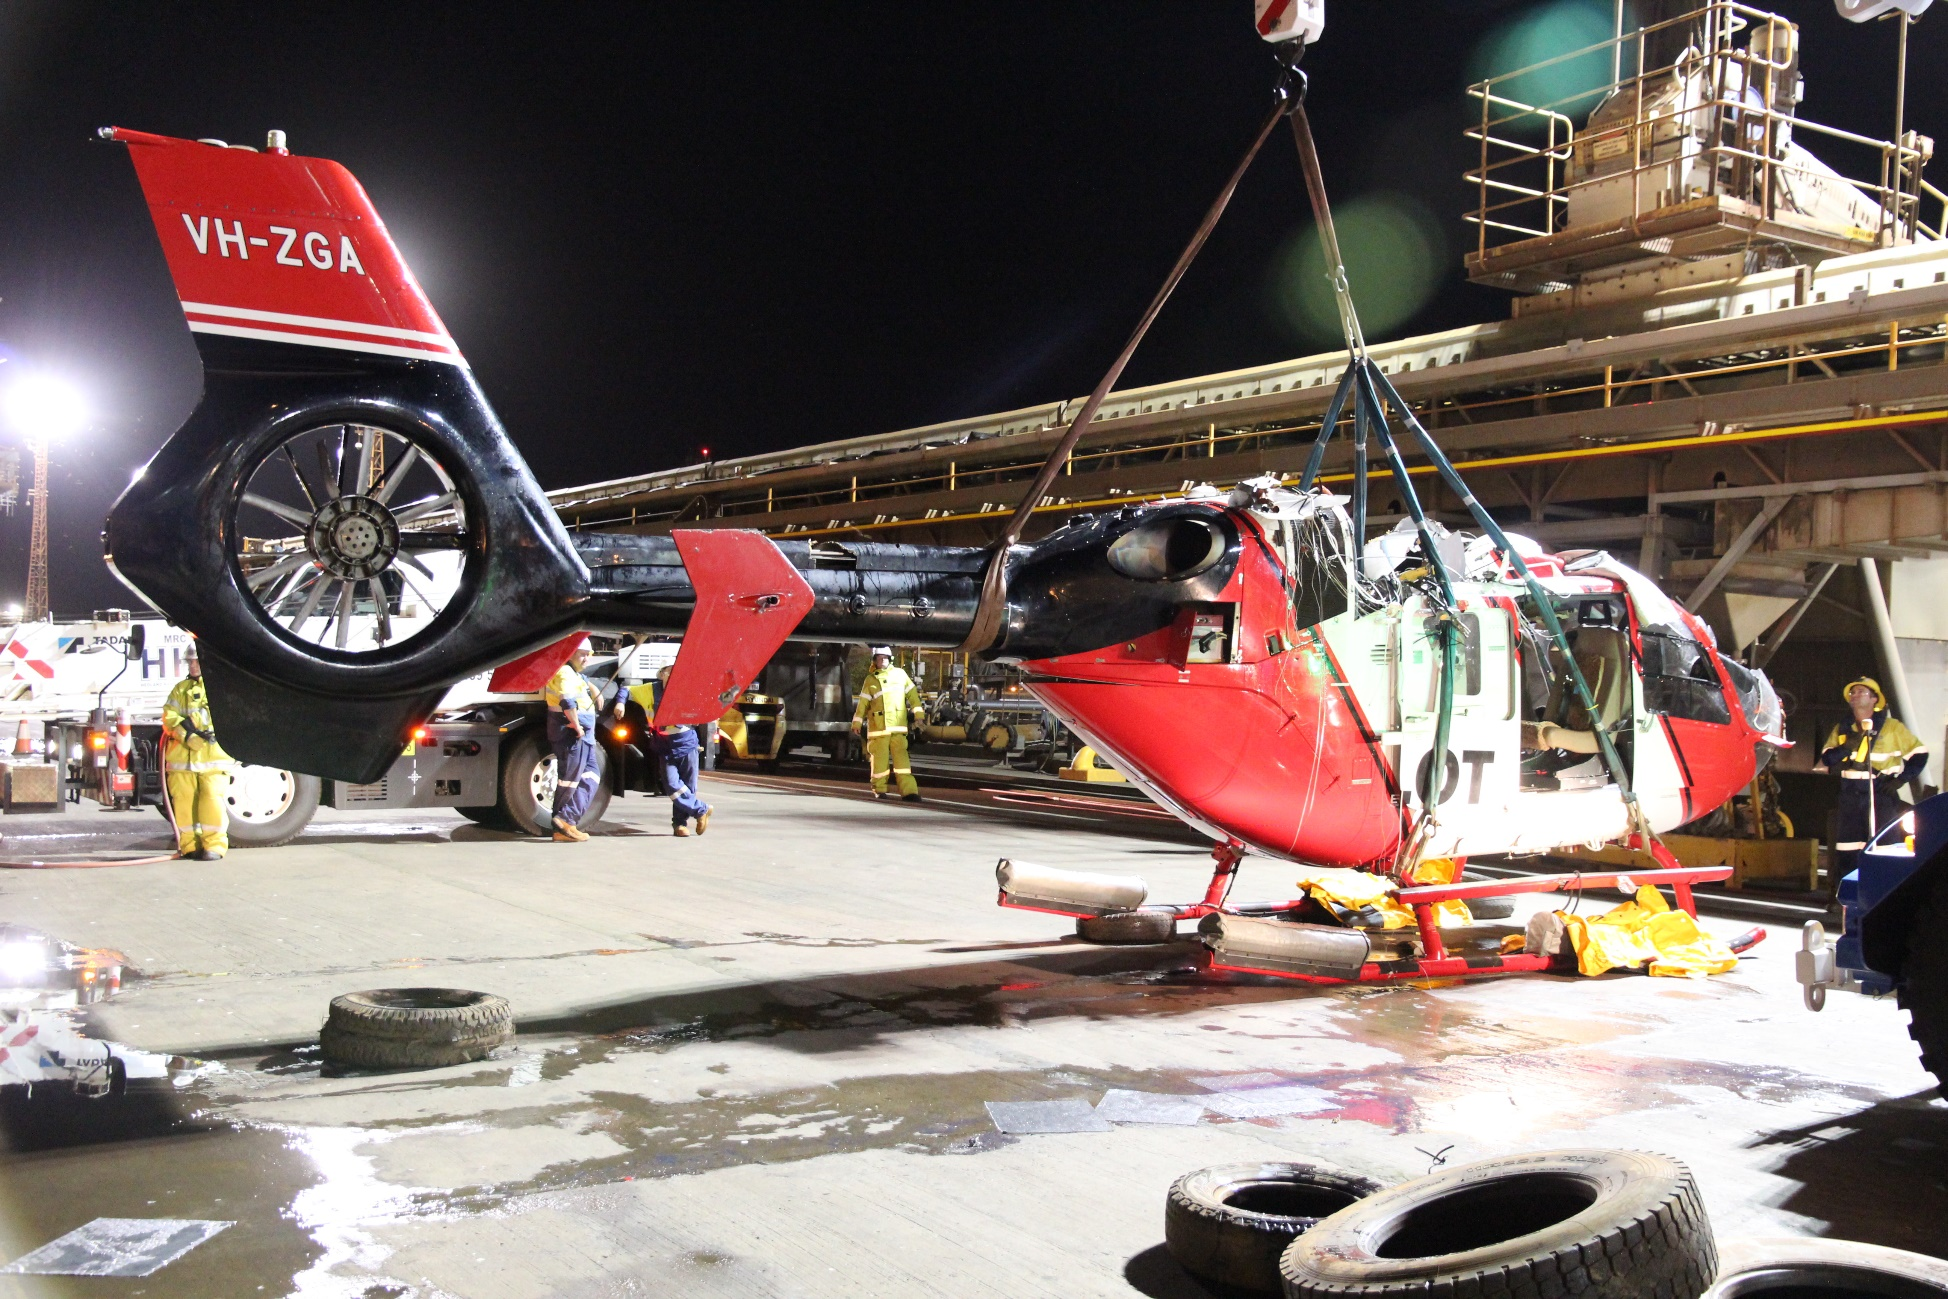 Investigation Ao 2018 022 Collision With Water Involving Twin Aerospace Wire Harness For Standard Figure 6 Helicopter Wreckage Being Lifted Onto The Dock